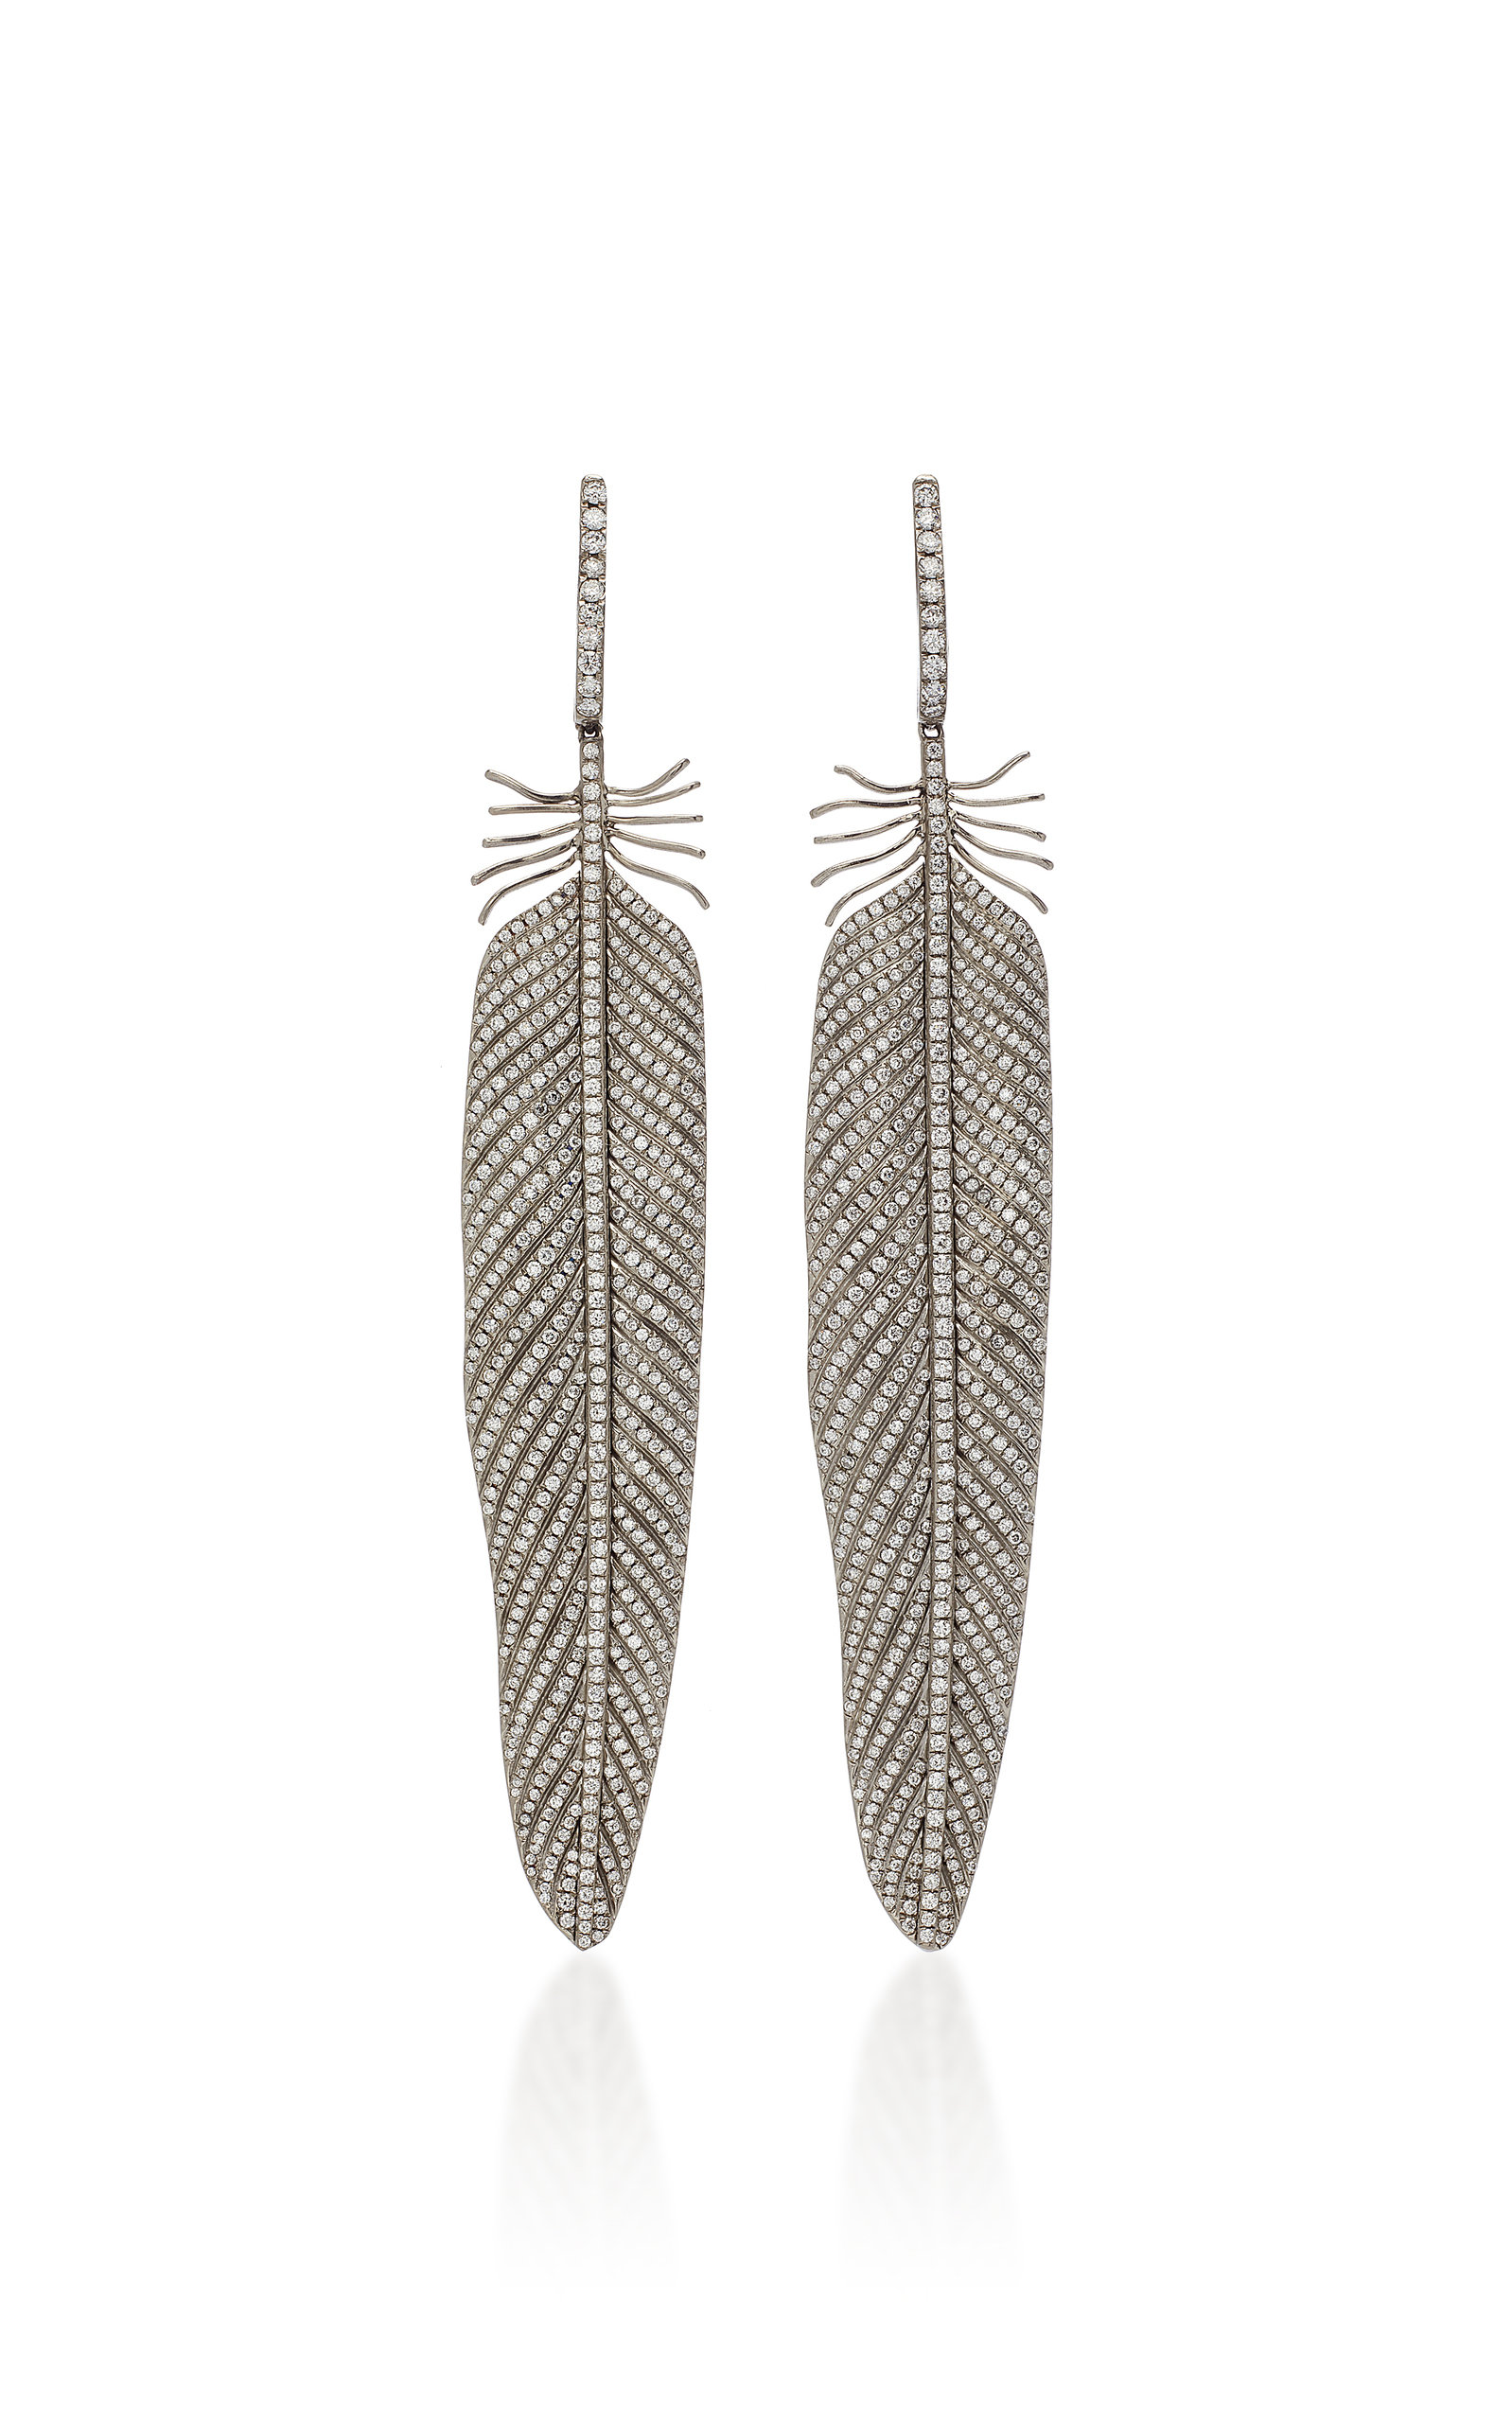 SIDNEY GARBER Plumage Titanium And Diamond Earrings in Grey